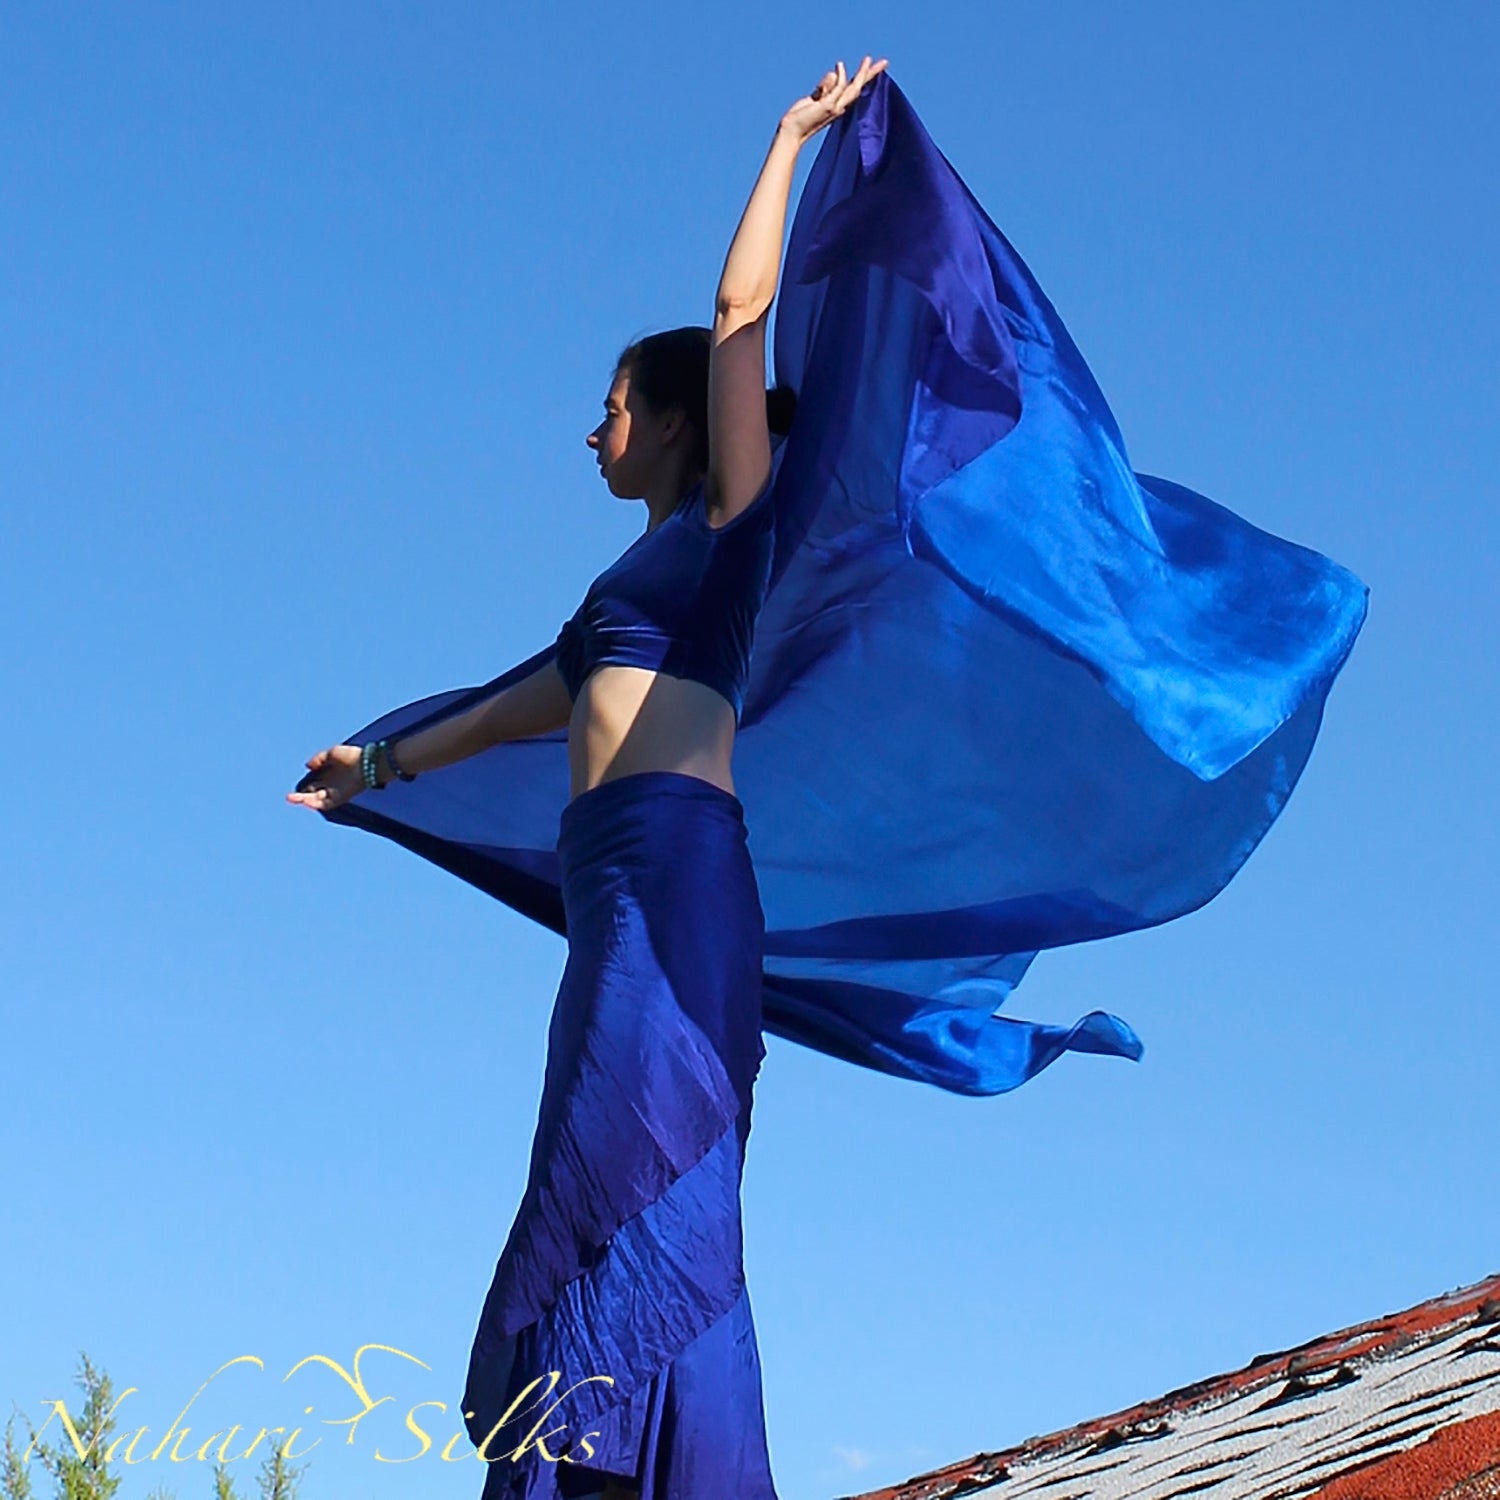 Nahari Silks Womens Hand-Dyed Silk Circle Skirt and Veil Set Royal Blue Blend